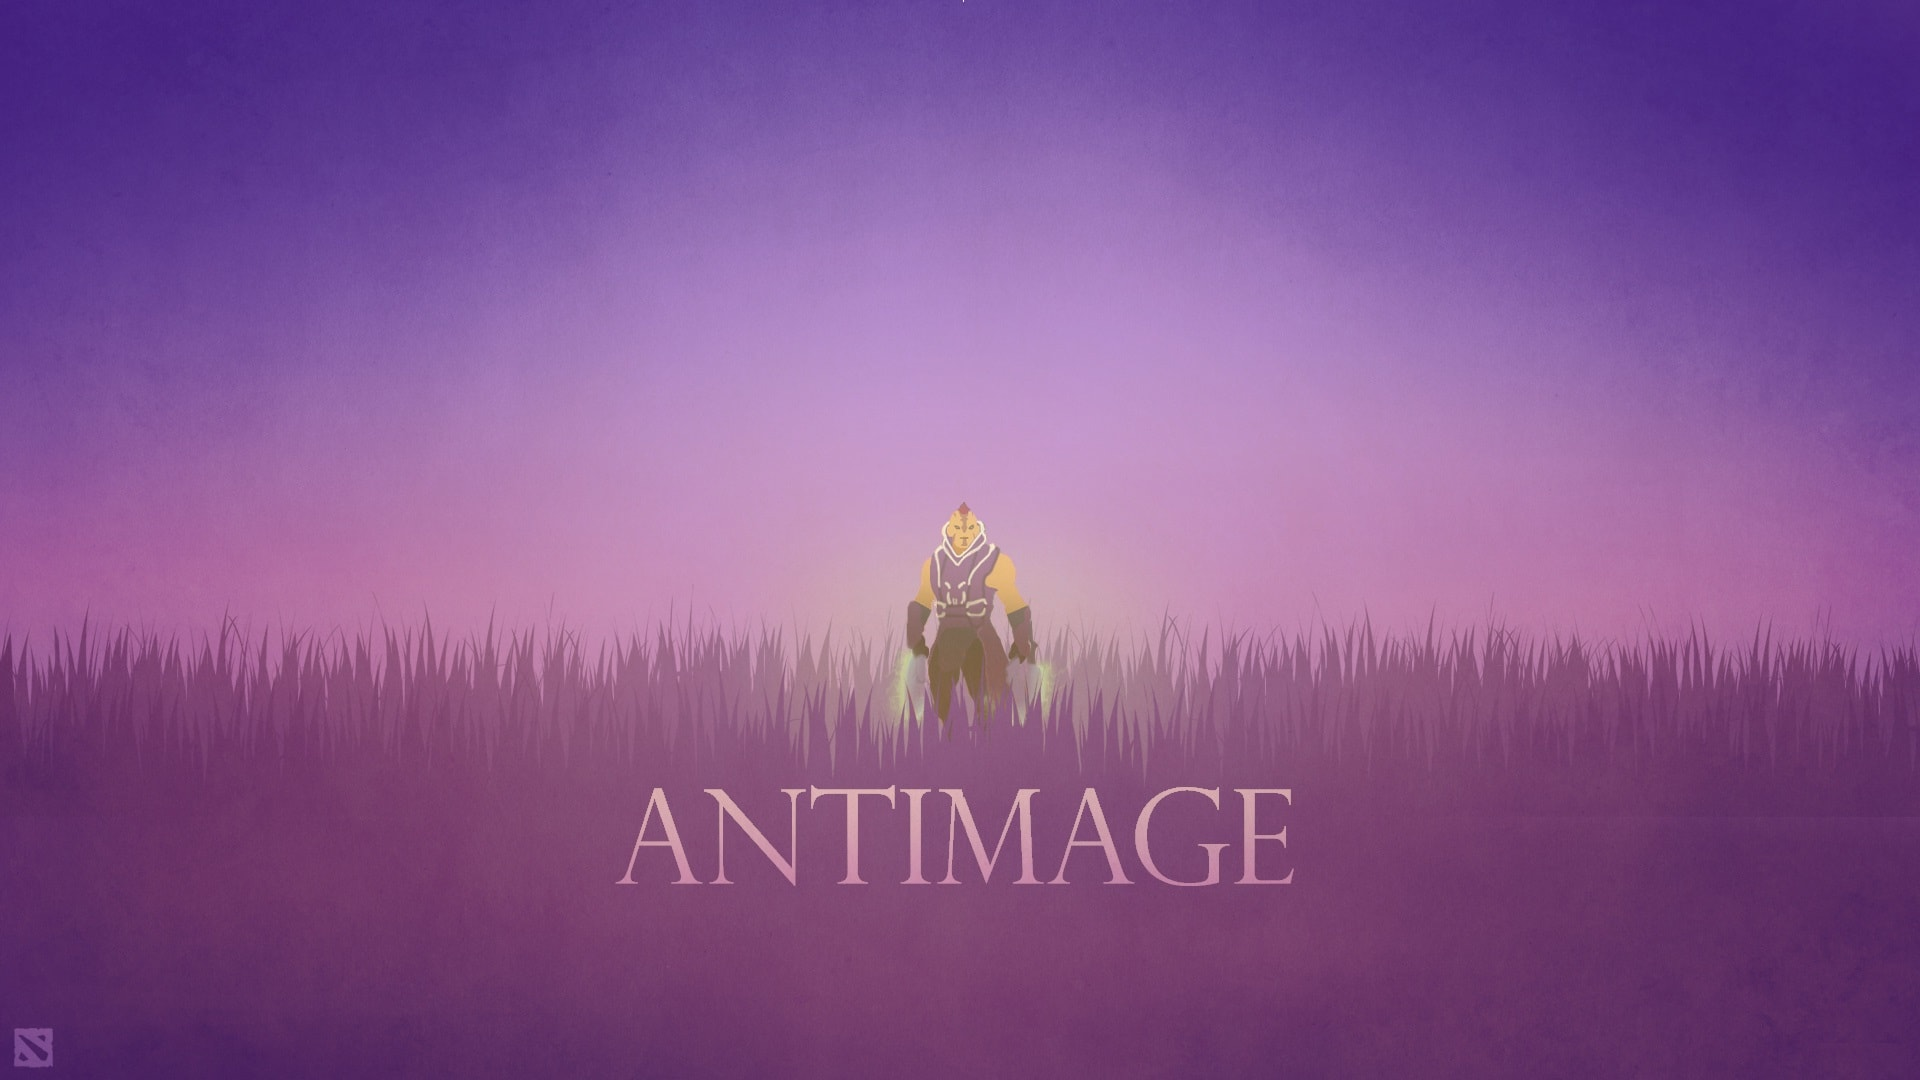 Dota2 : Anti-Mage desktop wallpaper